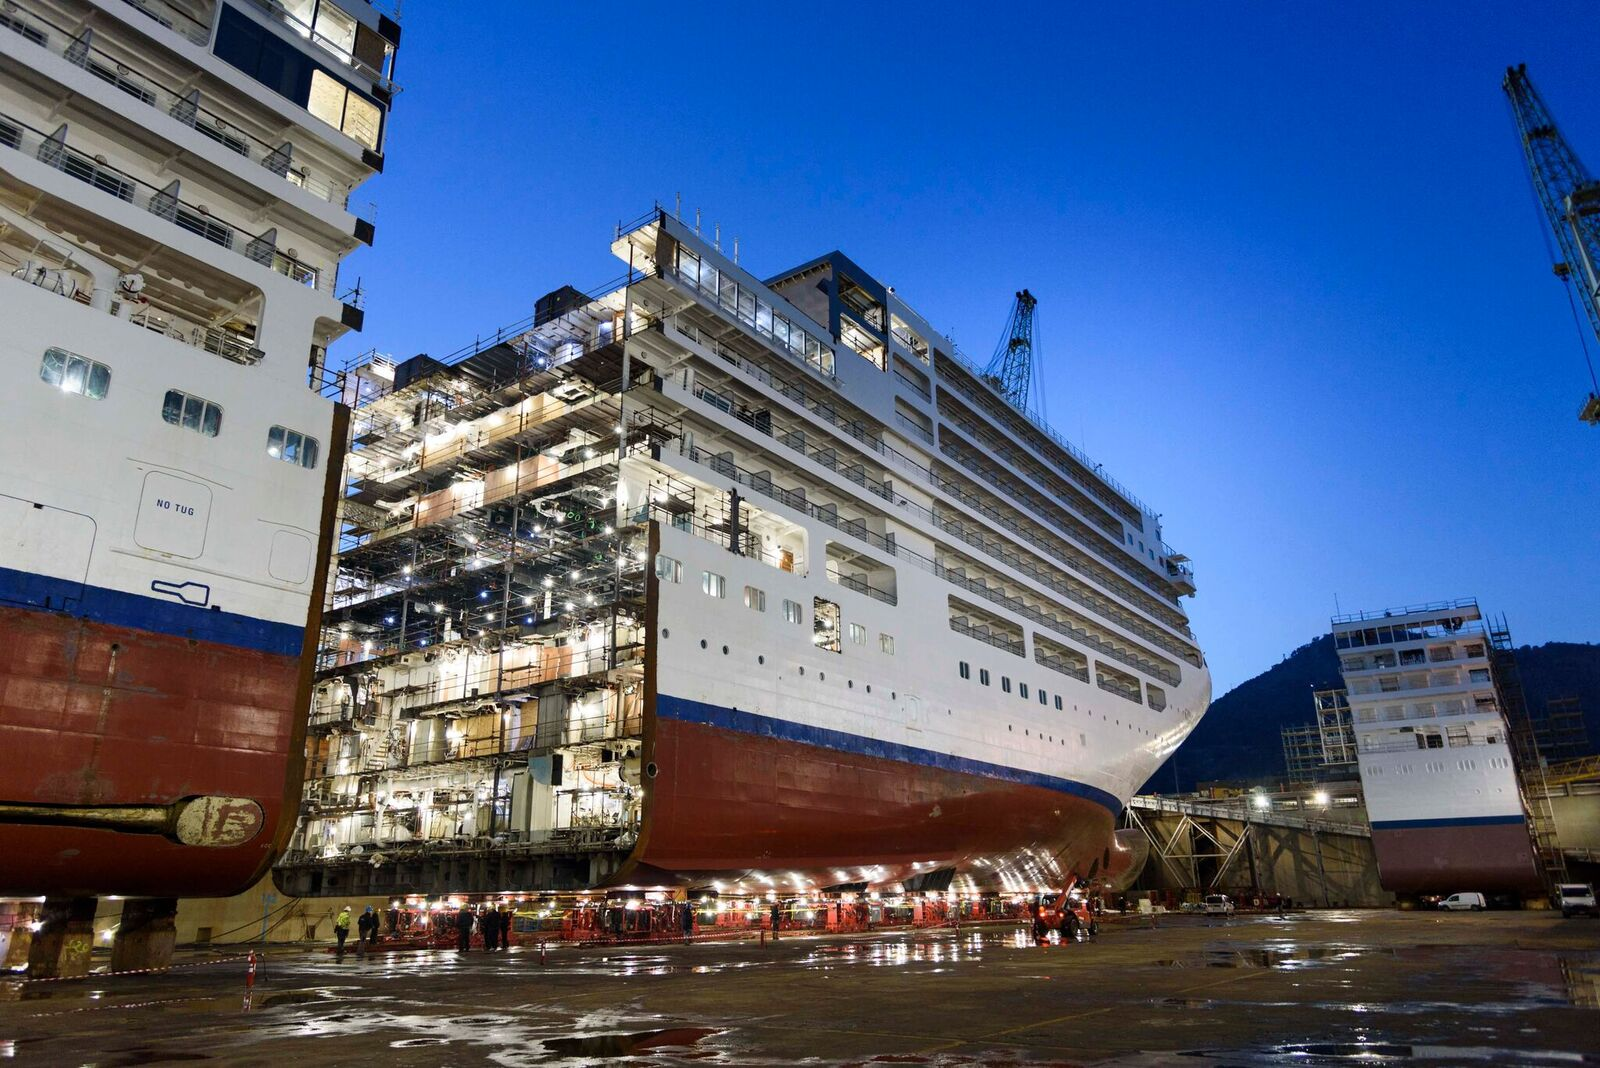 Images Shipbuilders Lengthen Luxury Cruise Ship By 15